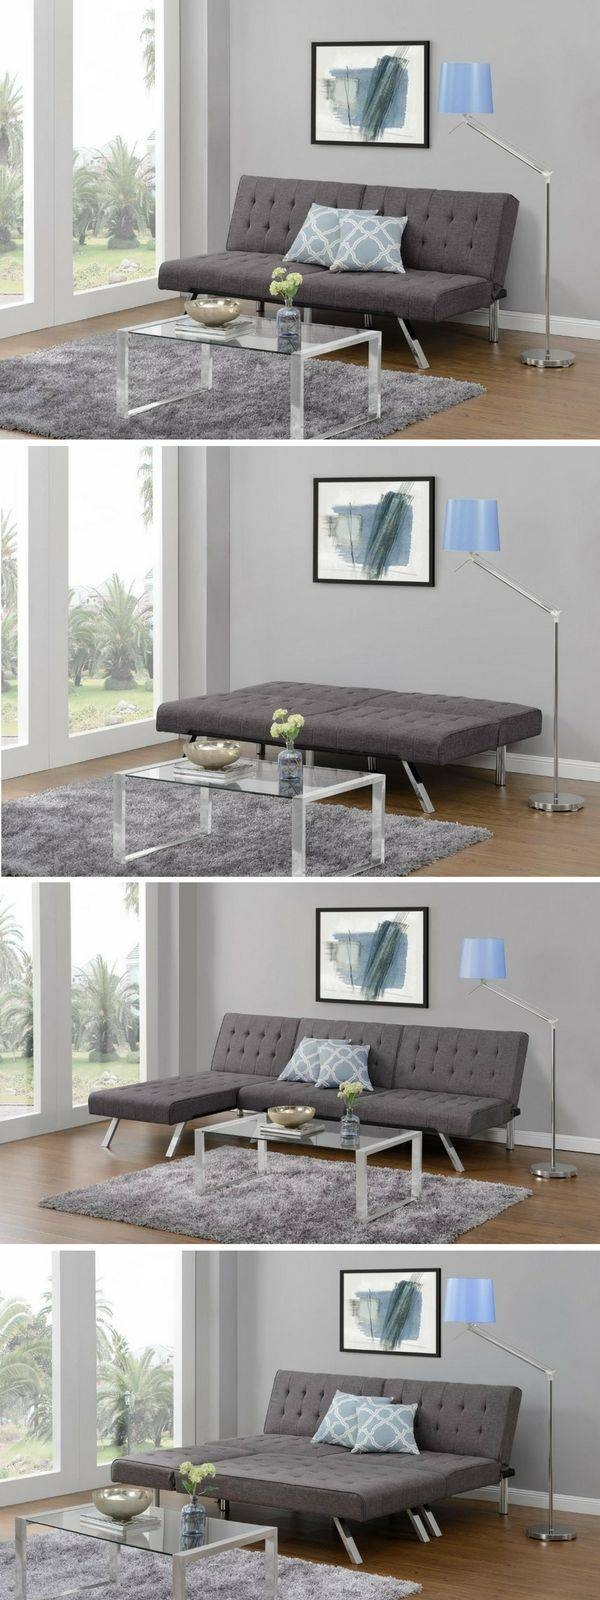 Bedroom Furniture : Bed In Couch Sofa Bed Mattress Recliner Sofa intended for Sofa Convertibles (Image 3 of 30)